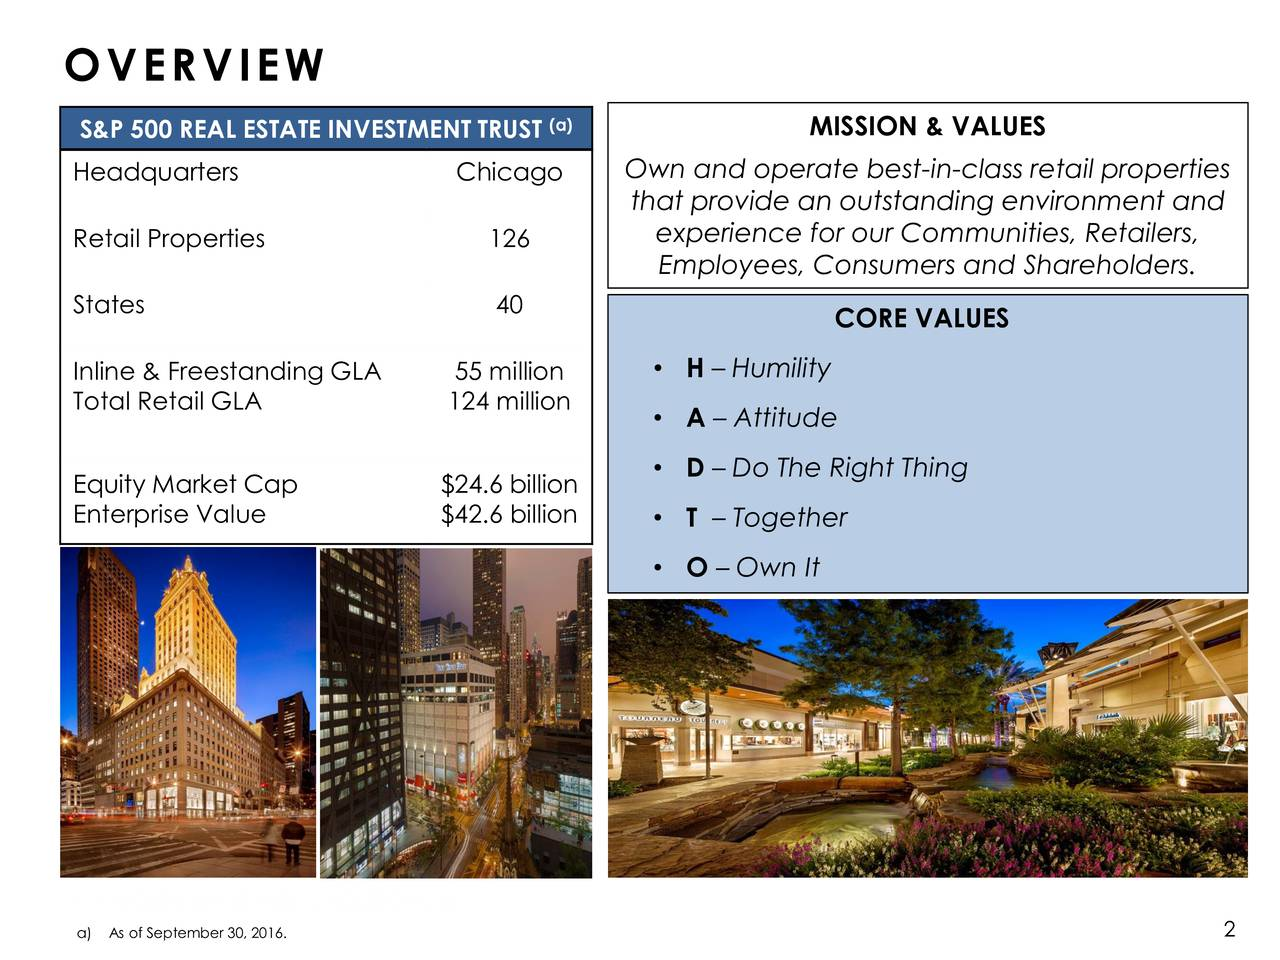 S&P 500 REAL ESTATE INVESTMENT TRUST (a) MISSION & VALUES Headquarters Chicago Own and operate best-in-class retail properties that provide an outstanding environment and Retail Properties 126 experience for our Communities, Retailers, Employees, Consumers and Shareholders. States 40 CORE VALUES Inline & Freestanding GLA 55 million  H  Humility Total Retail GLA 124 million A  Attitude D  Do The Right Thing Equity Market Cap $24.6 billion Enterprise Value $42.6 billion  T  Together O  Own It Picture THE WOODLANDS MALL, HOUSTON, TX a) As of September 30, 2016. 2